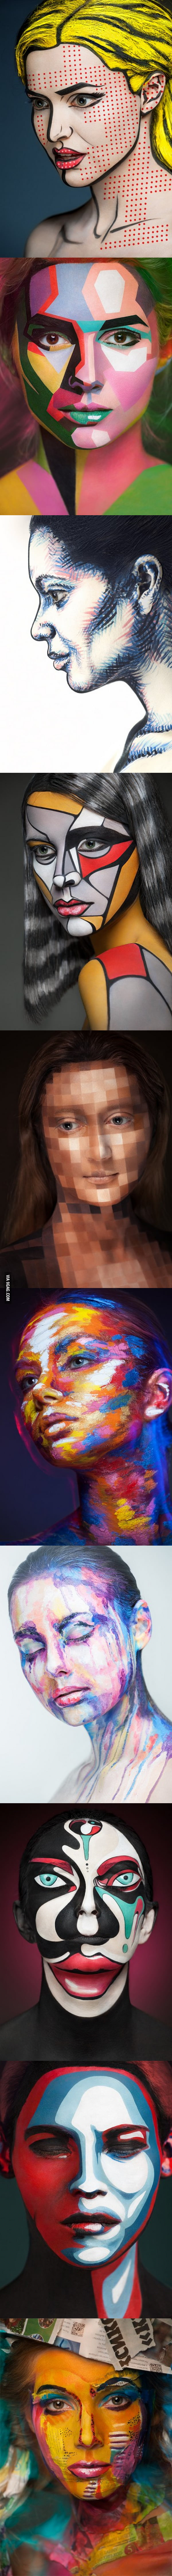 Incredible photographs of people wearing face paint